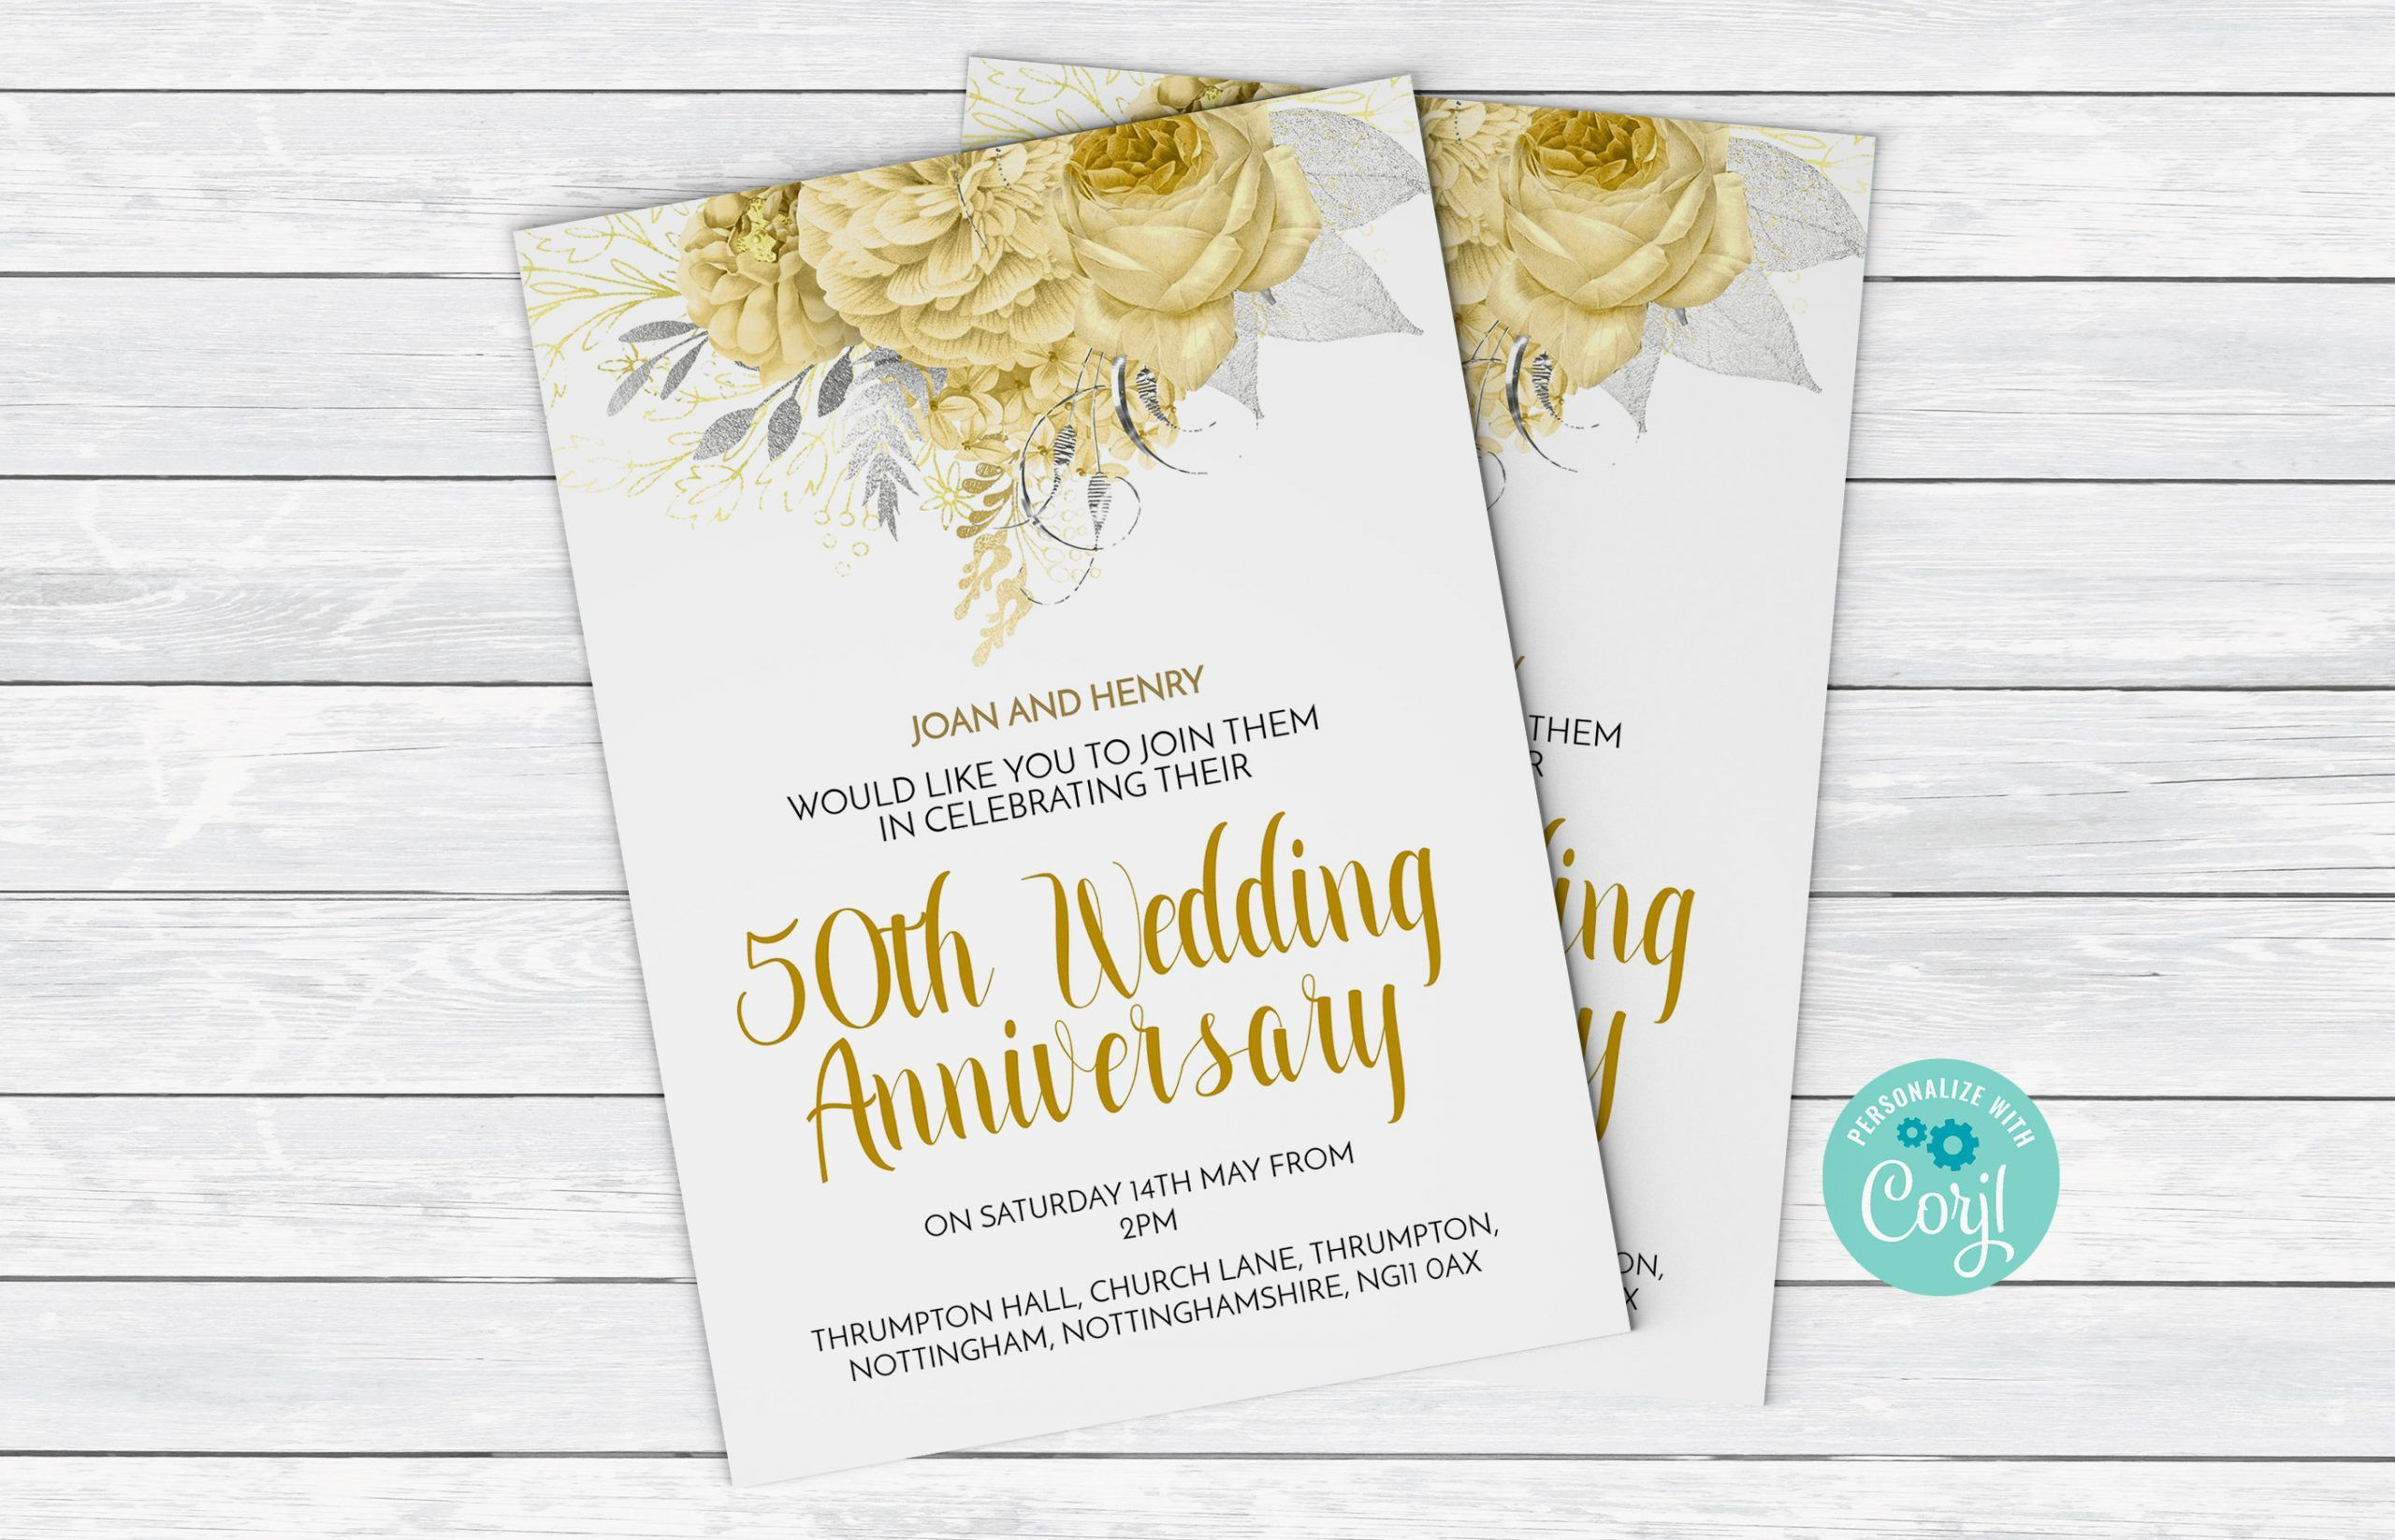 003 Staggering 50th Anniversary Invitation Template High Resolution  Wedding Microsoft Word Free DownloadFull